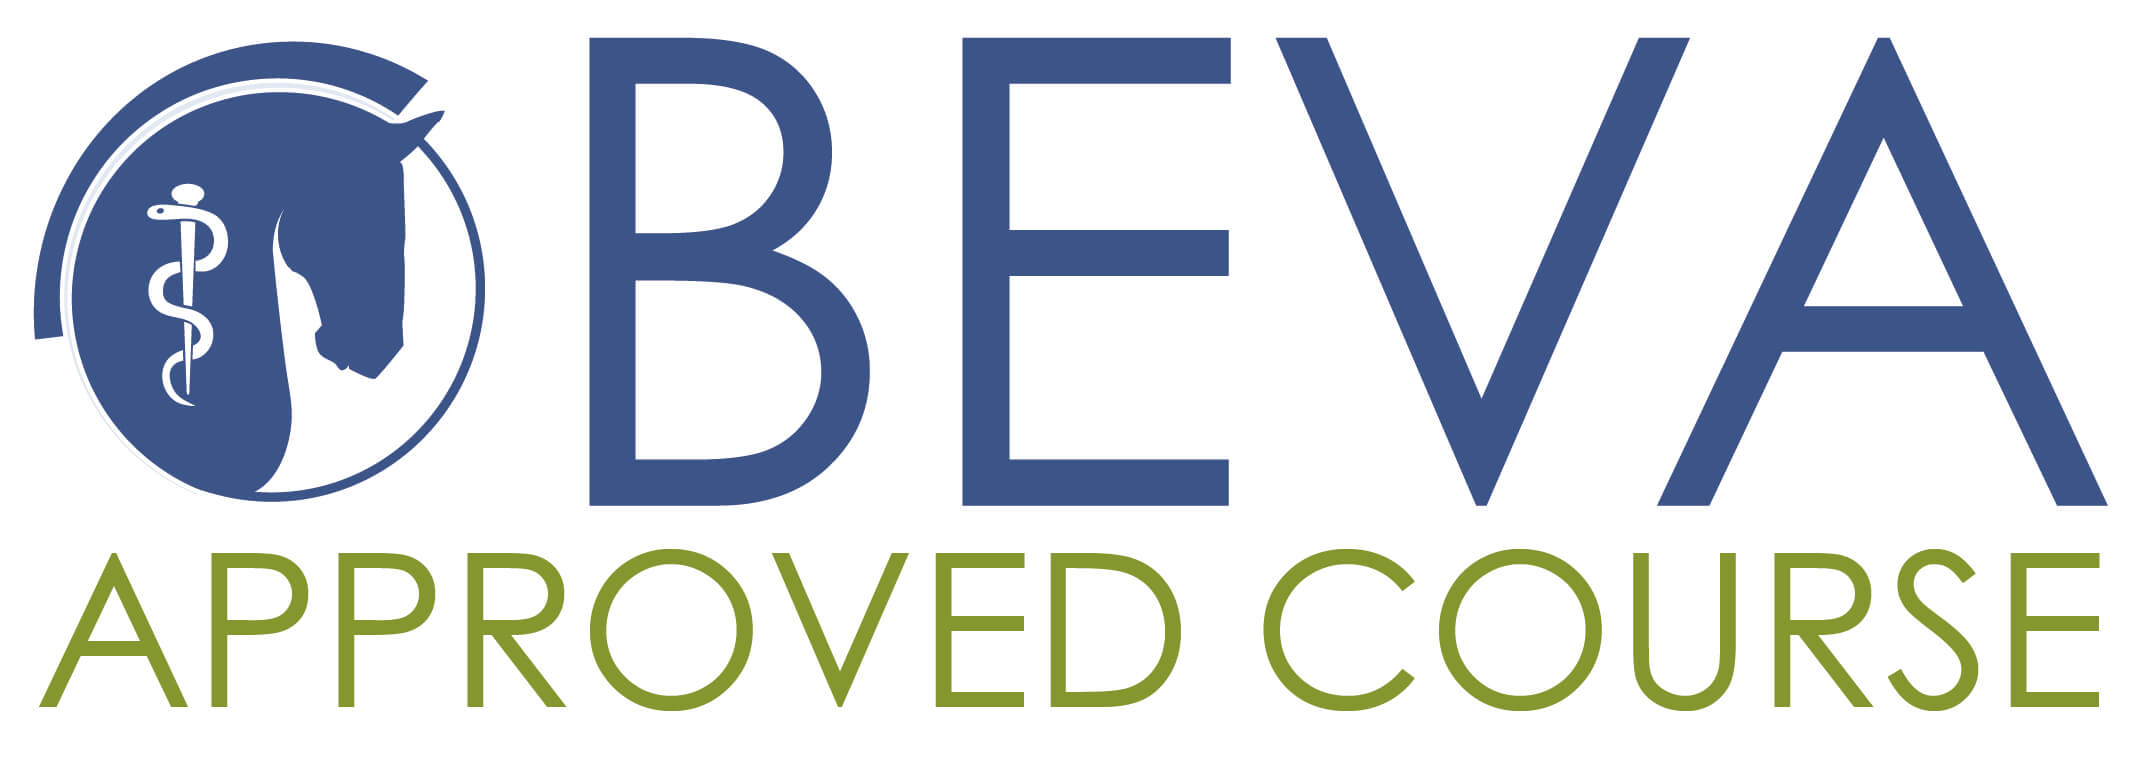 BEVA Approved Course